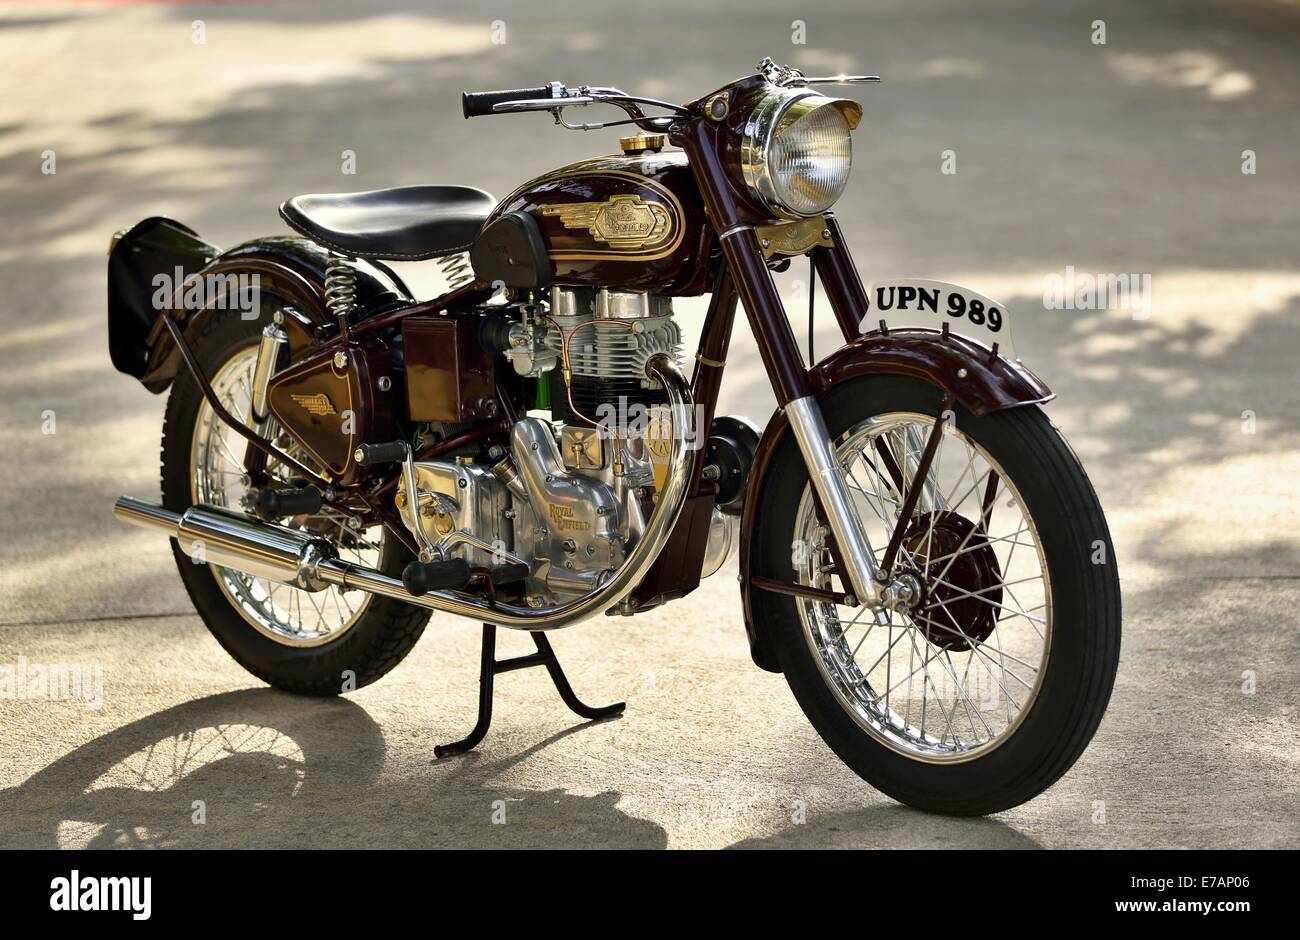 Royal enfield bullet pictures - Royal Enfield Bullet 350 Cc G2 1954 Made In England In India